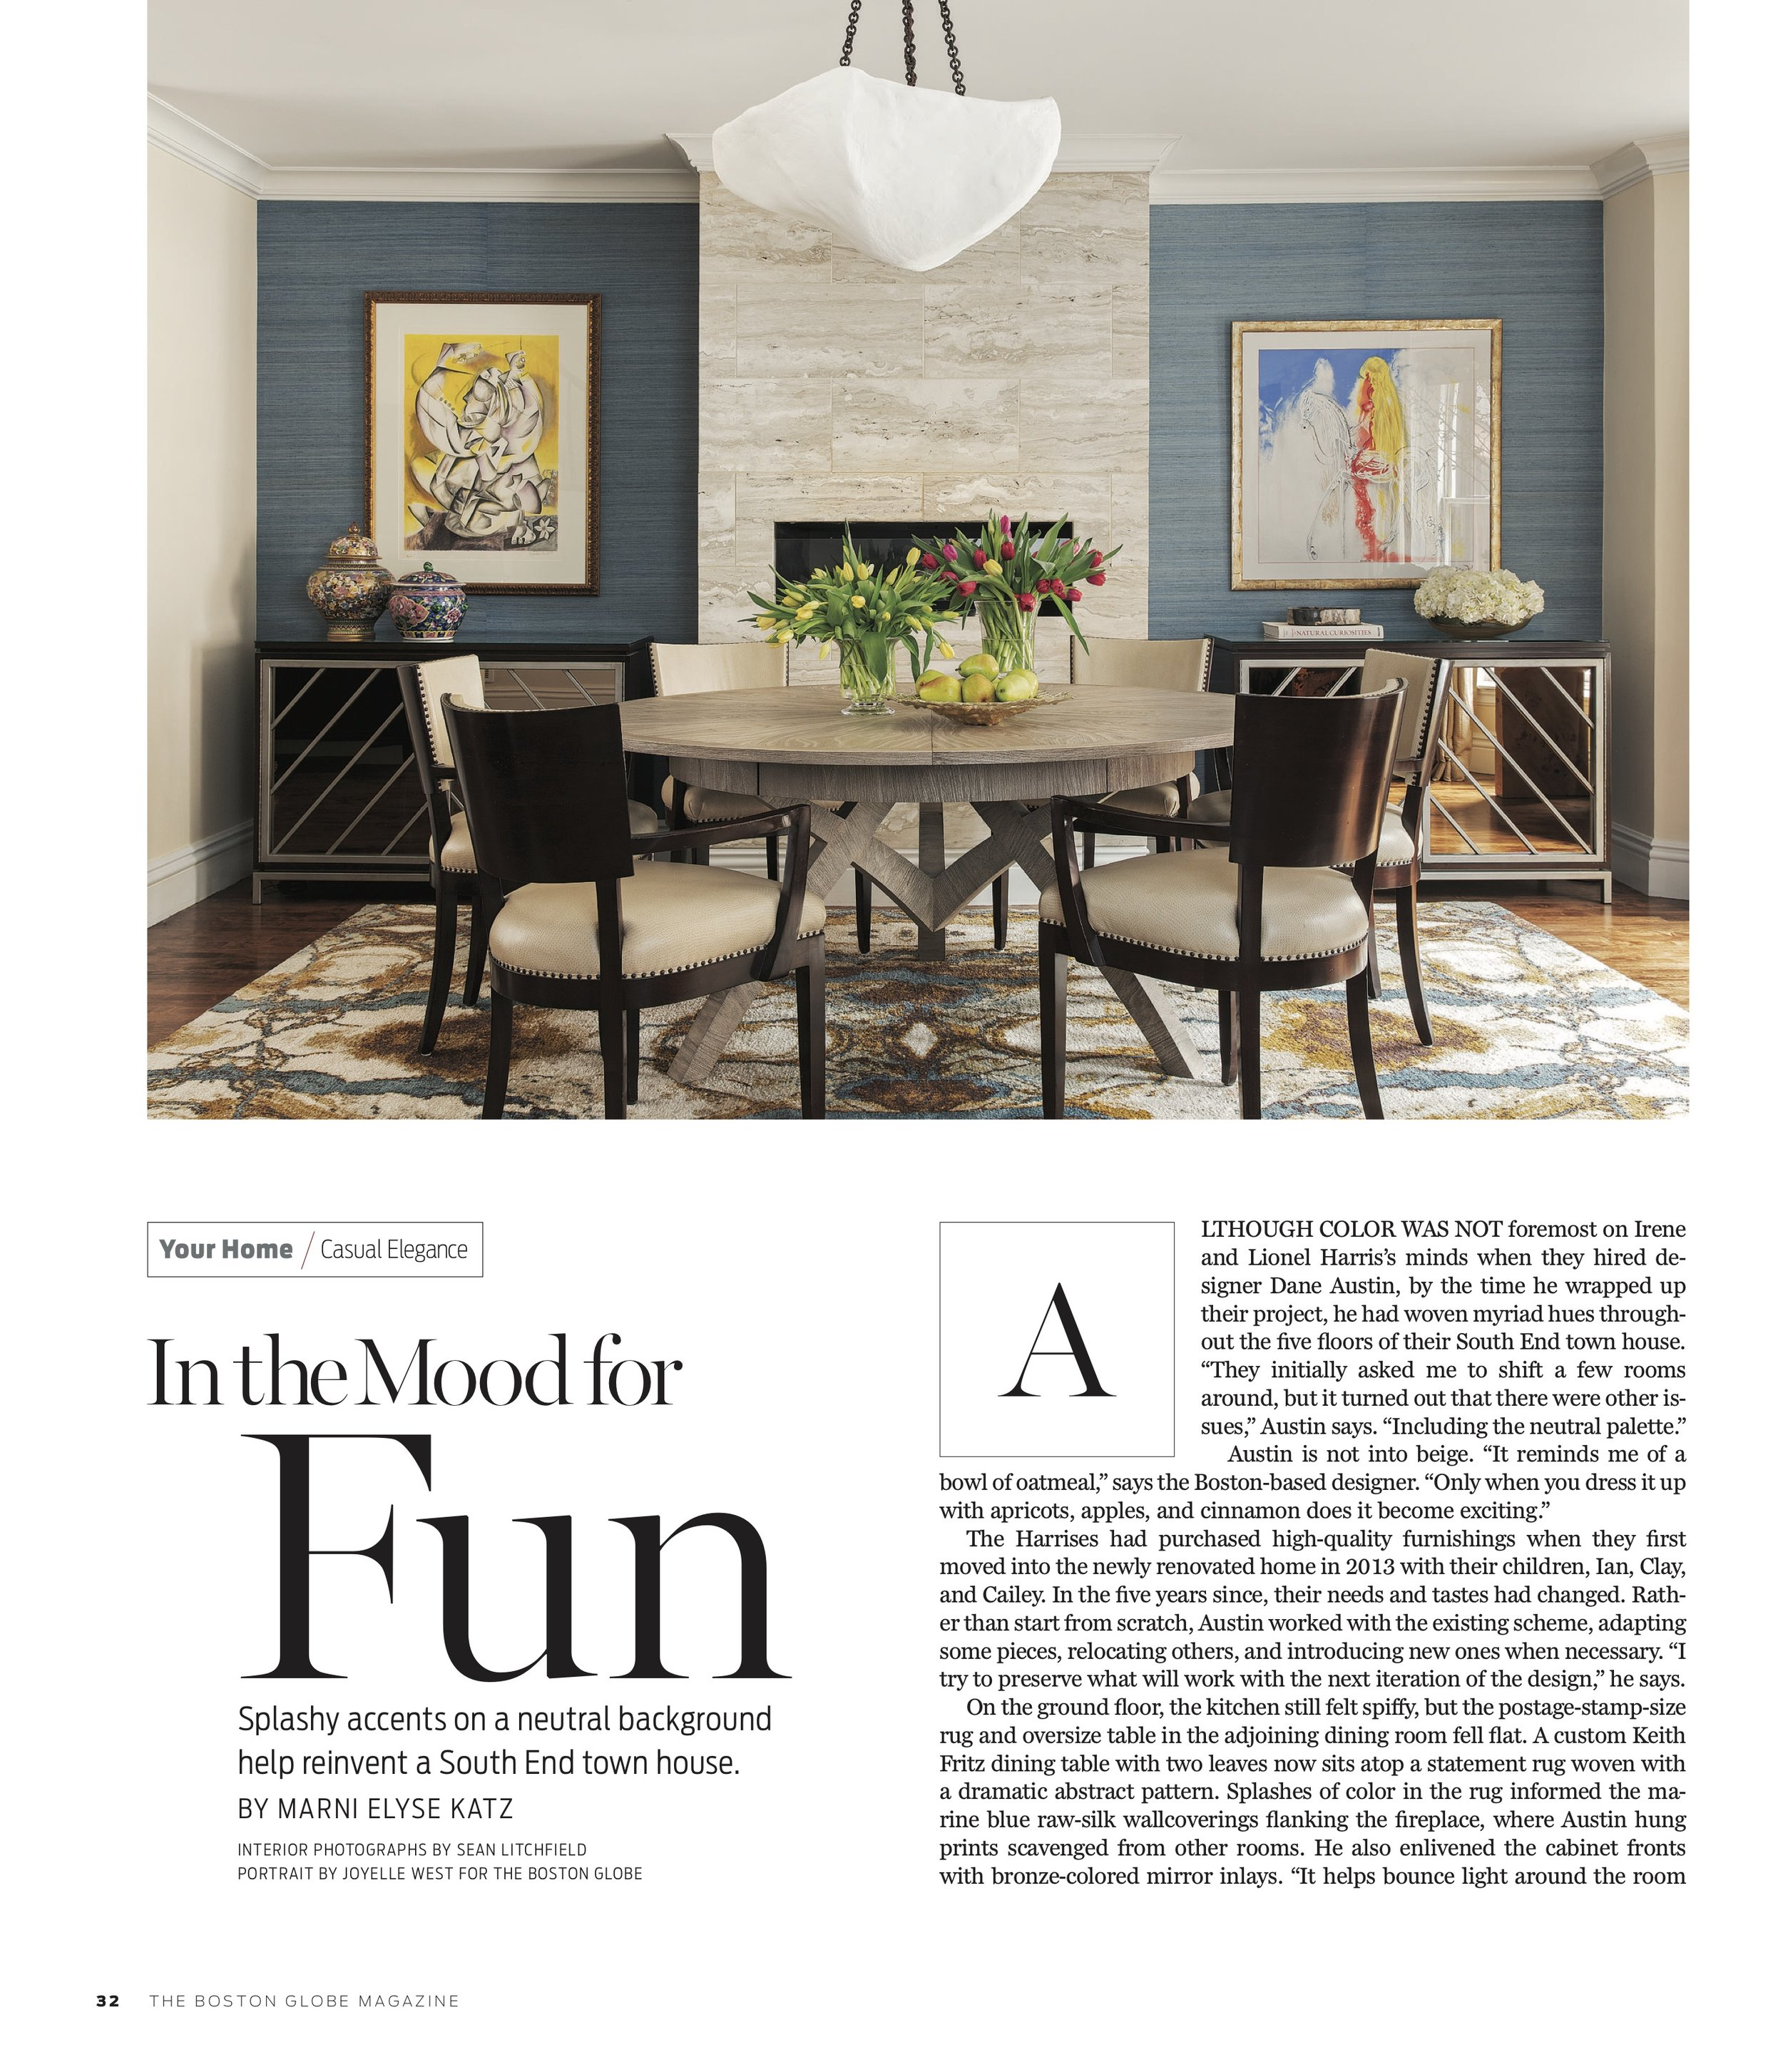 Dane Austin Design featured in Boston Globe Magazine March 2019 2